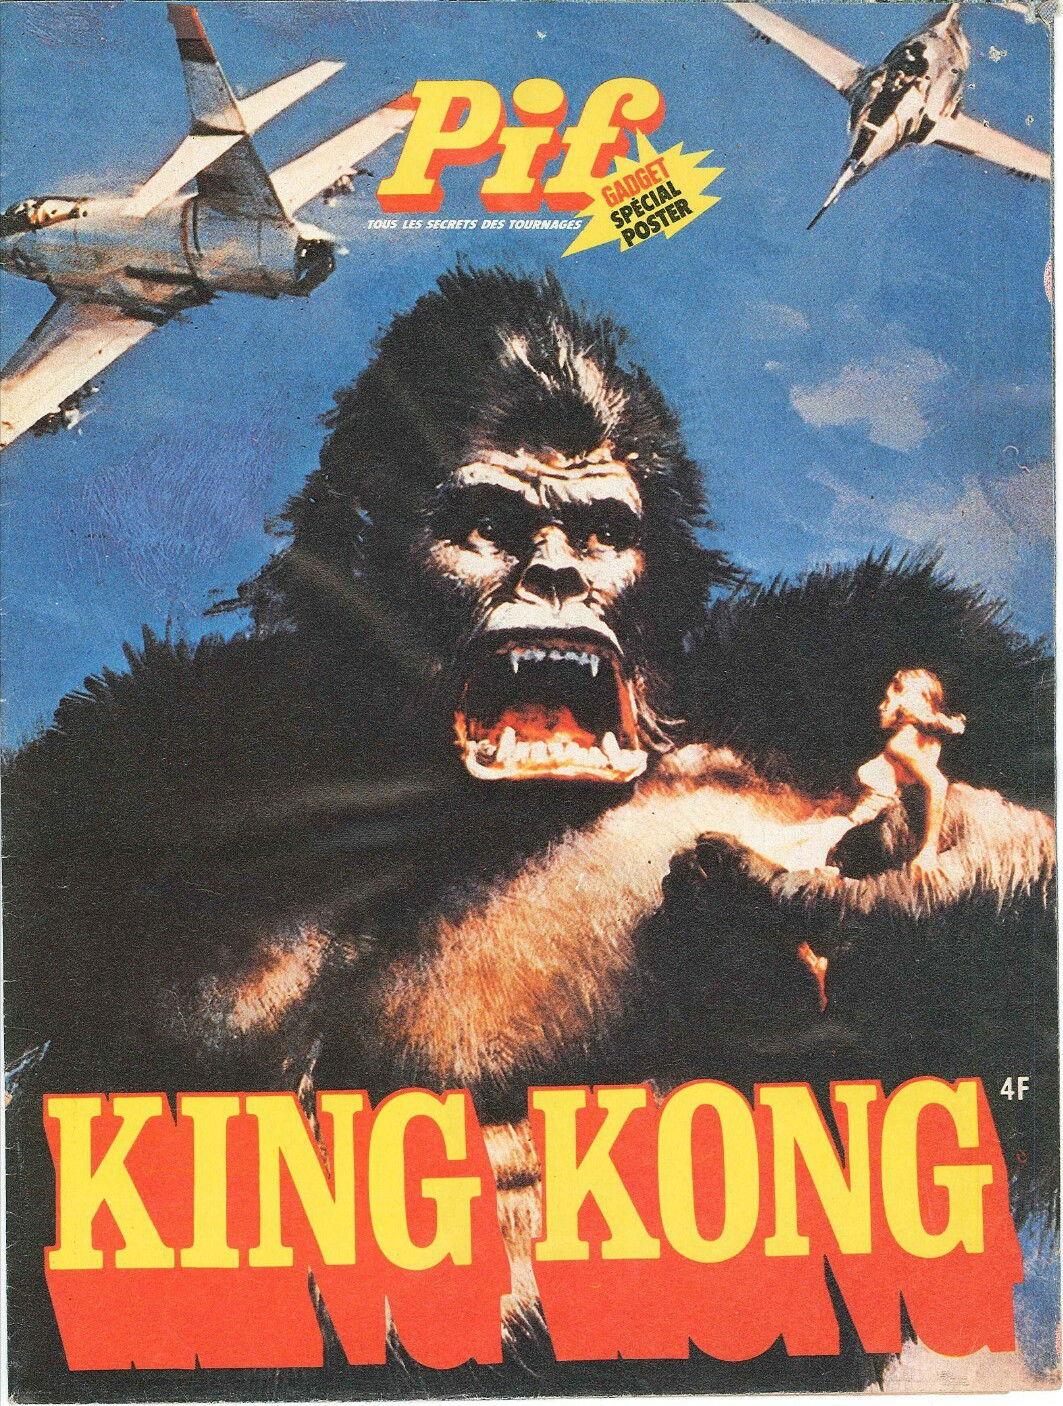 King.Kong.1976.Pif.Gadget.Special.Poster.couverture